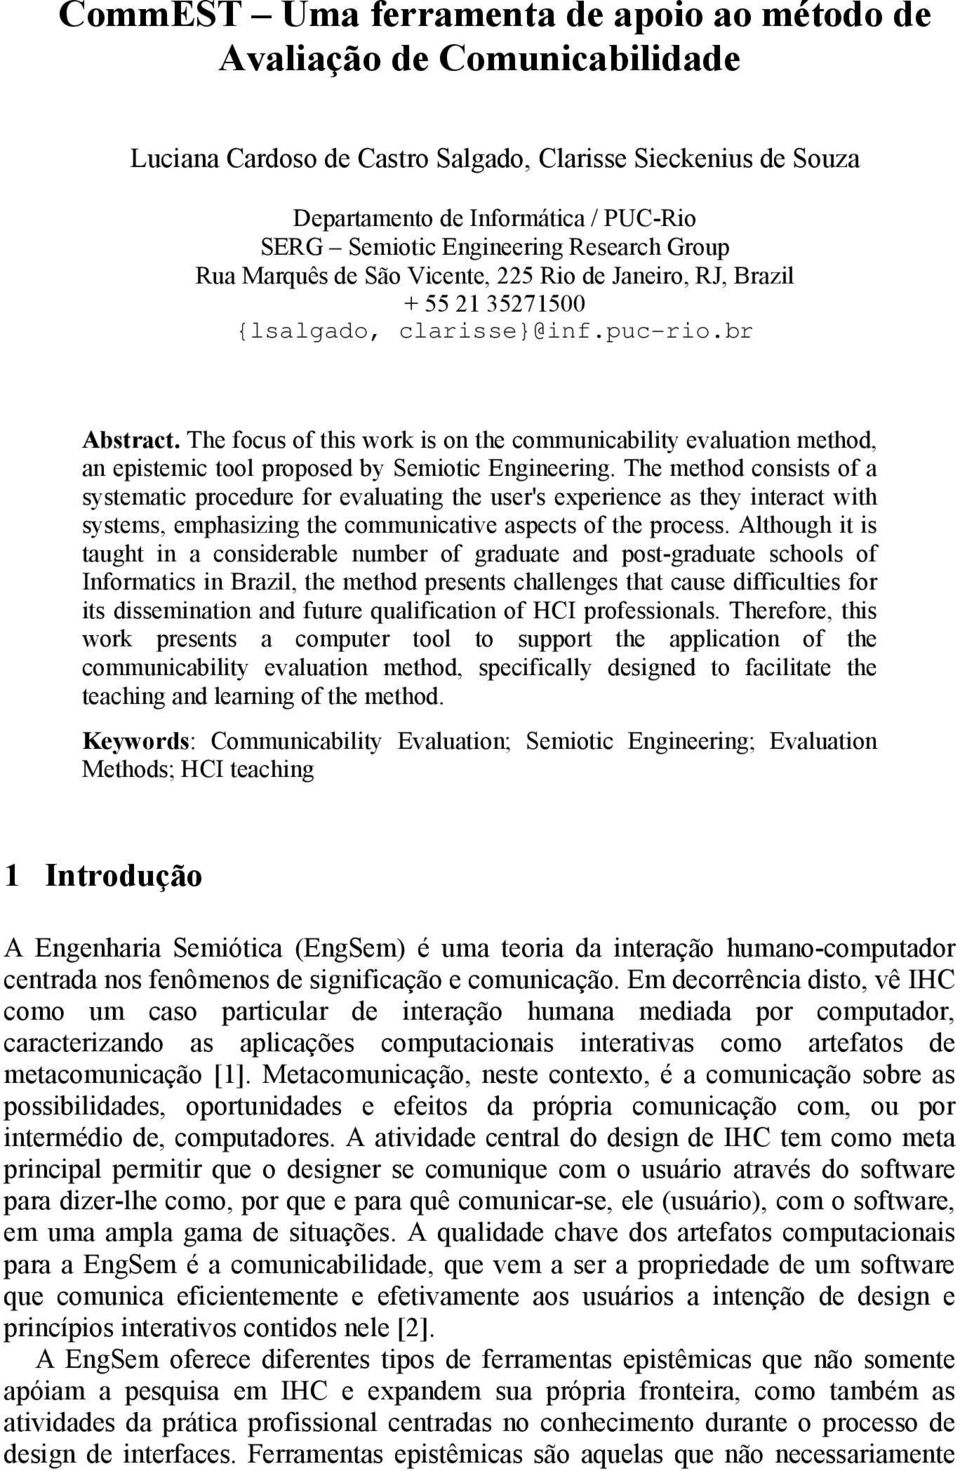 The focus of this work is on the communicability evaluation method, an epistemic tool proposed by Semiotic Engineering.